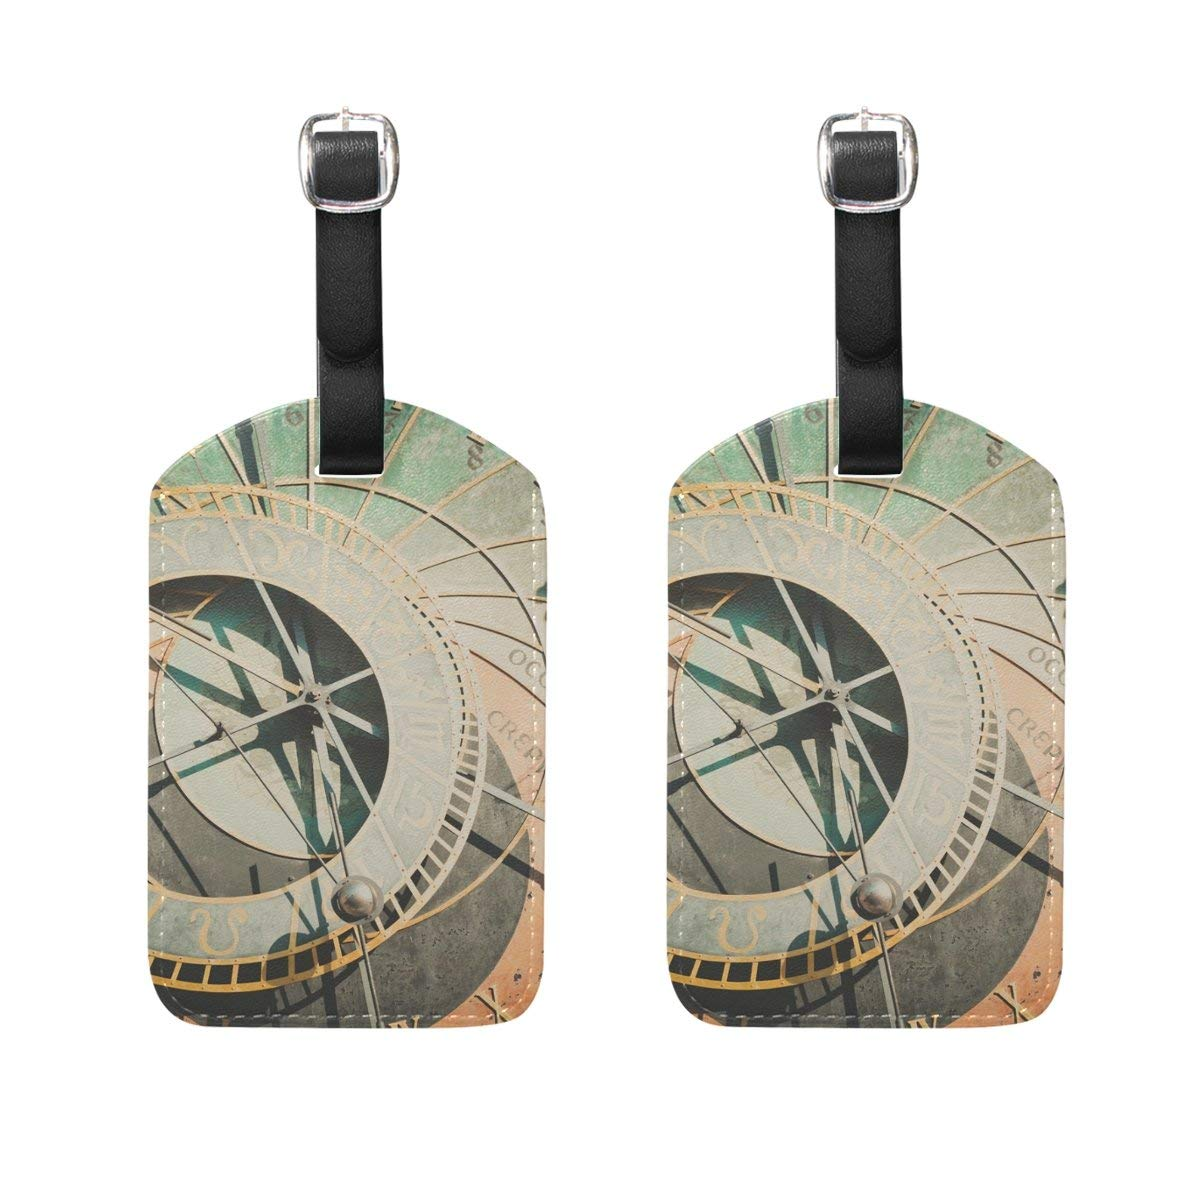 GTdgstdsc Moon Night Pattern Luggage Tags Travel Labels Tag Name Card Holder for Baggage